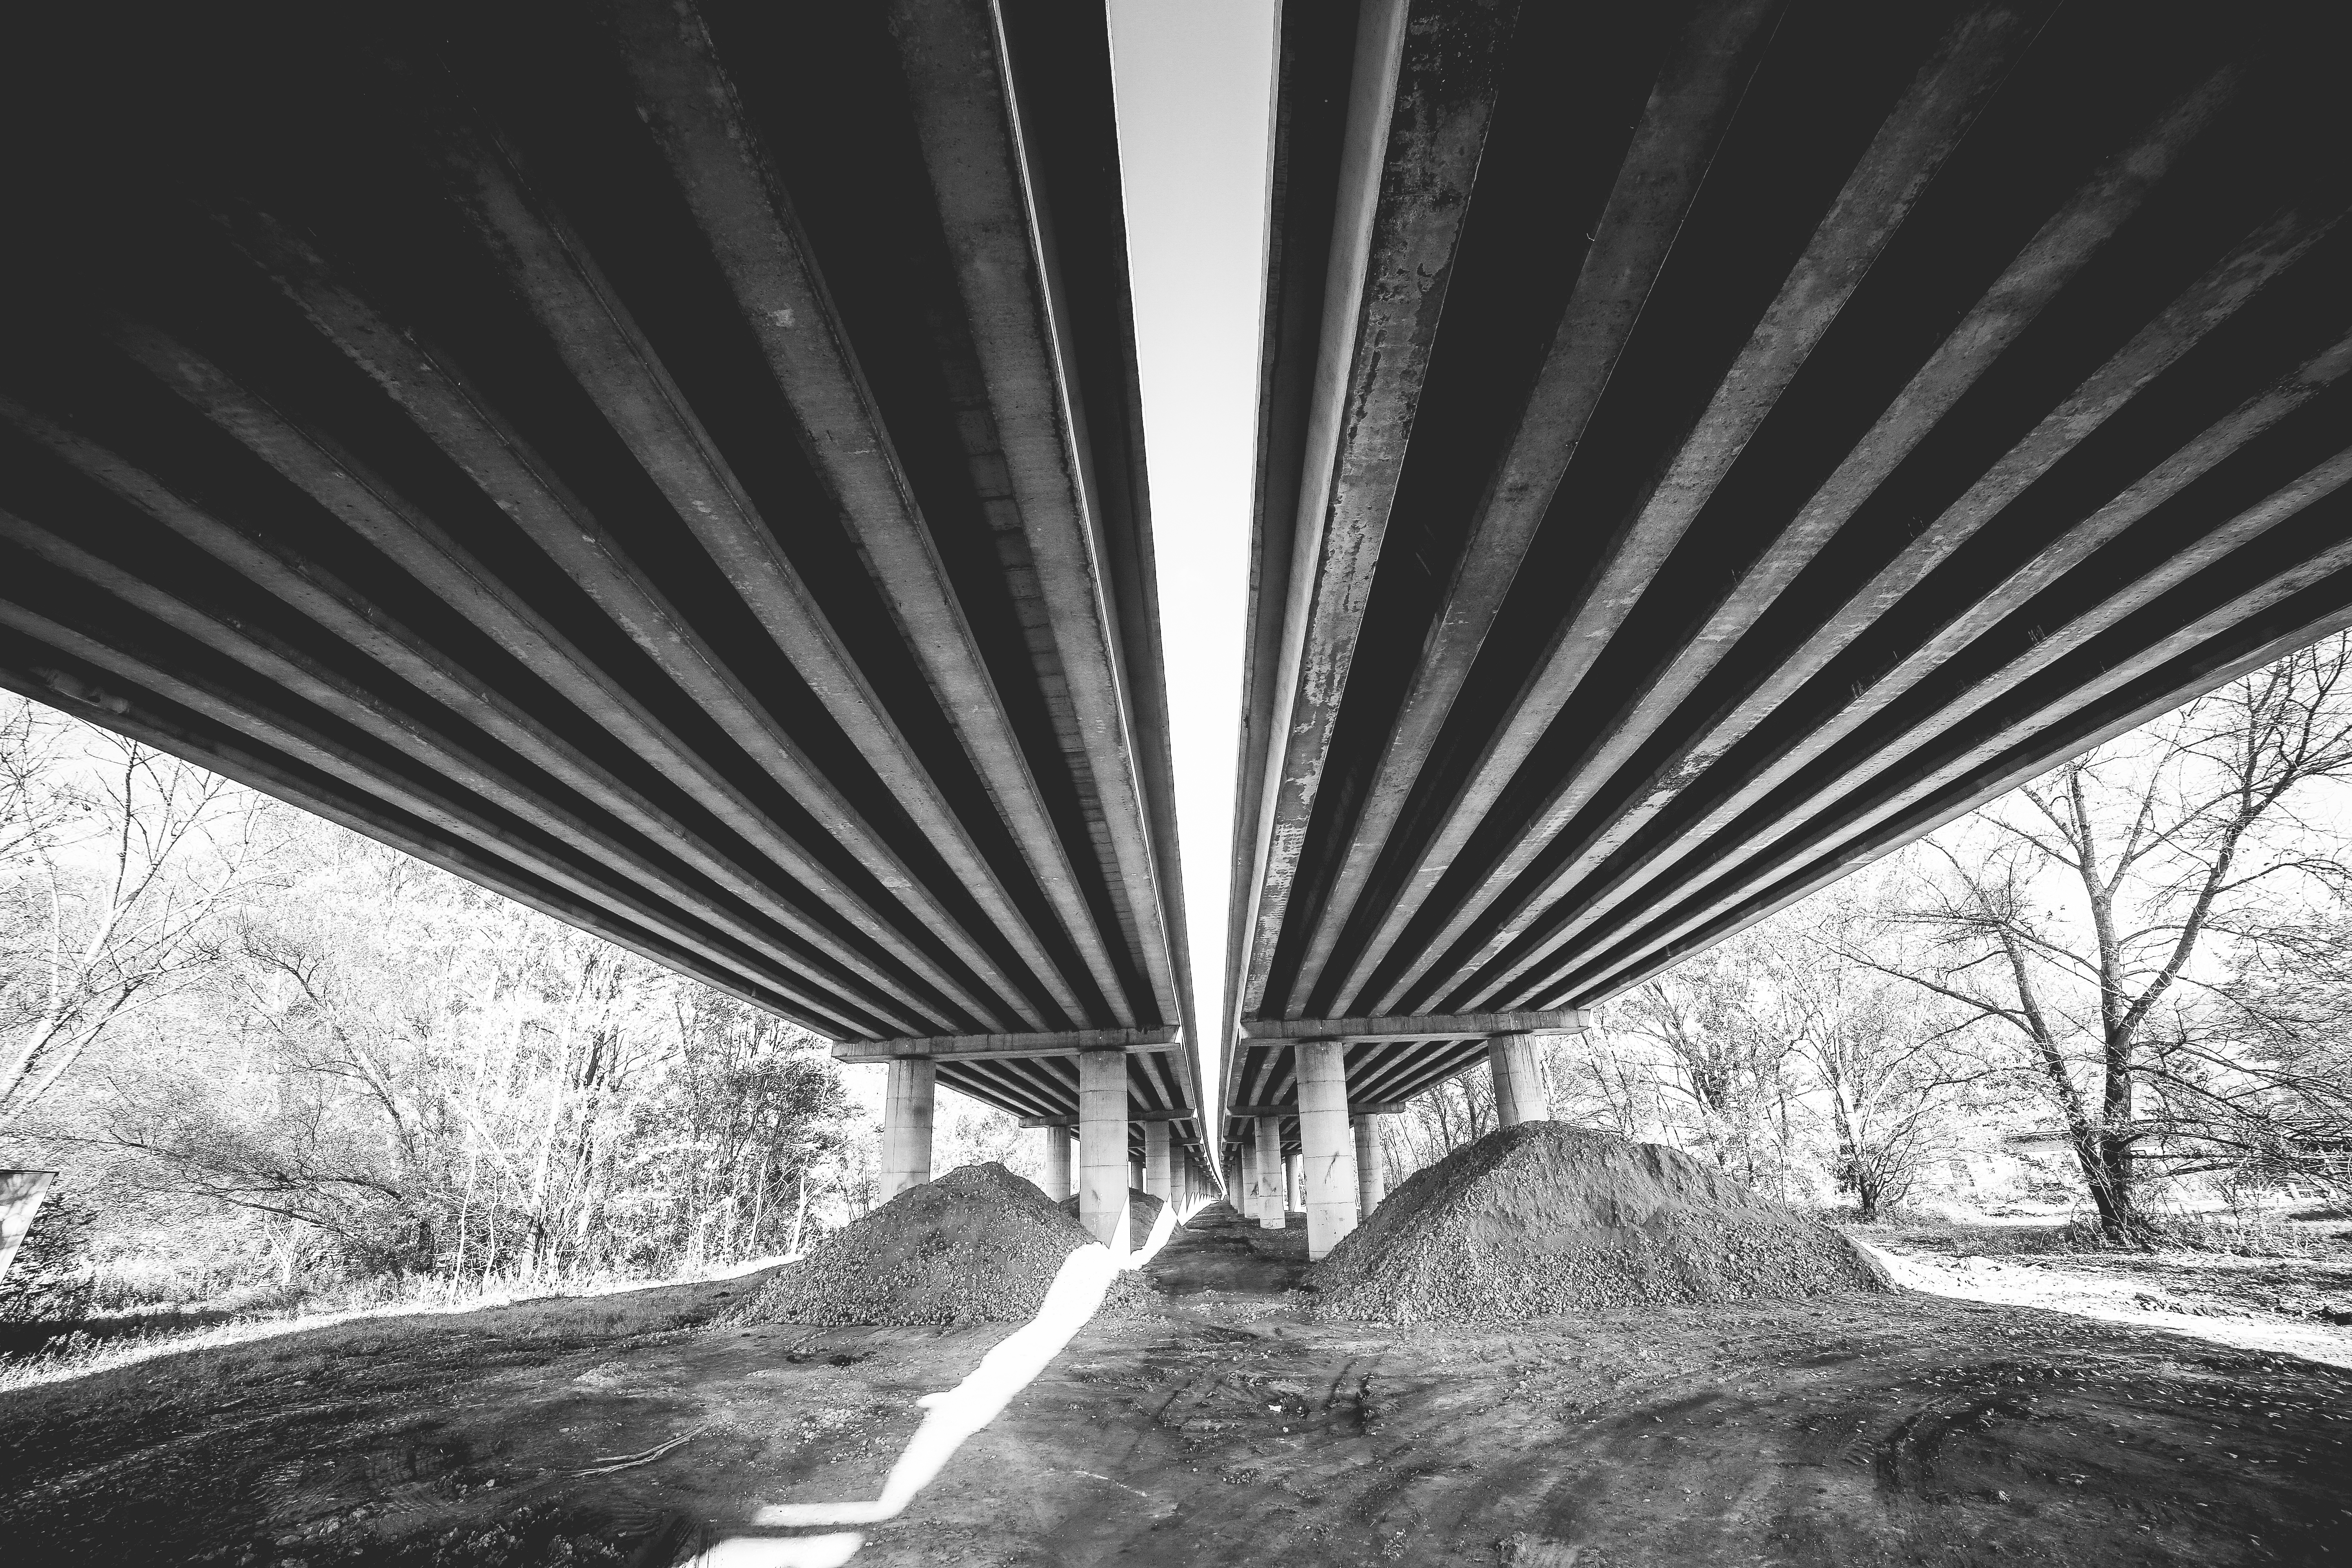 Download Two Long Ways: Under Highway FREE Stock Photo